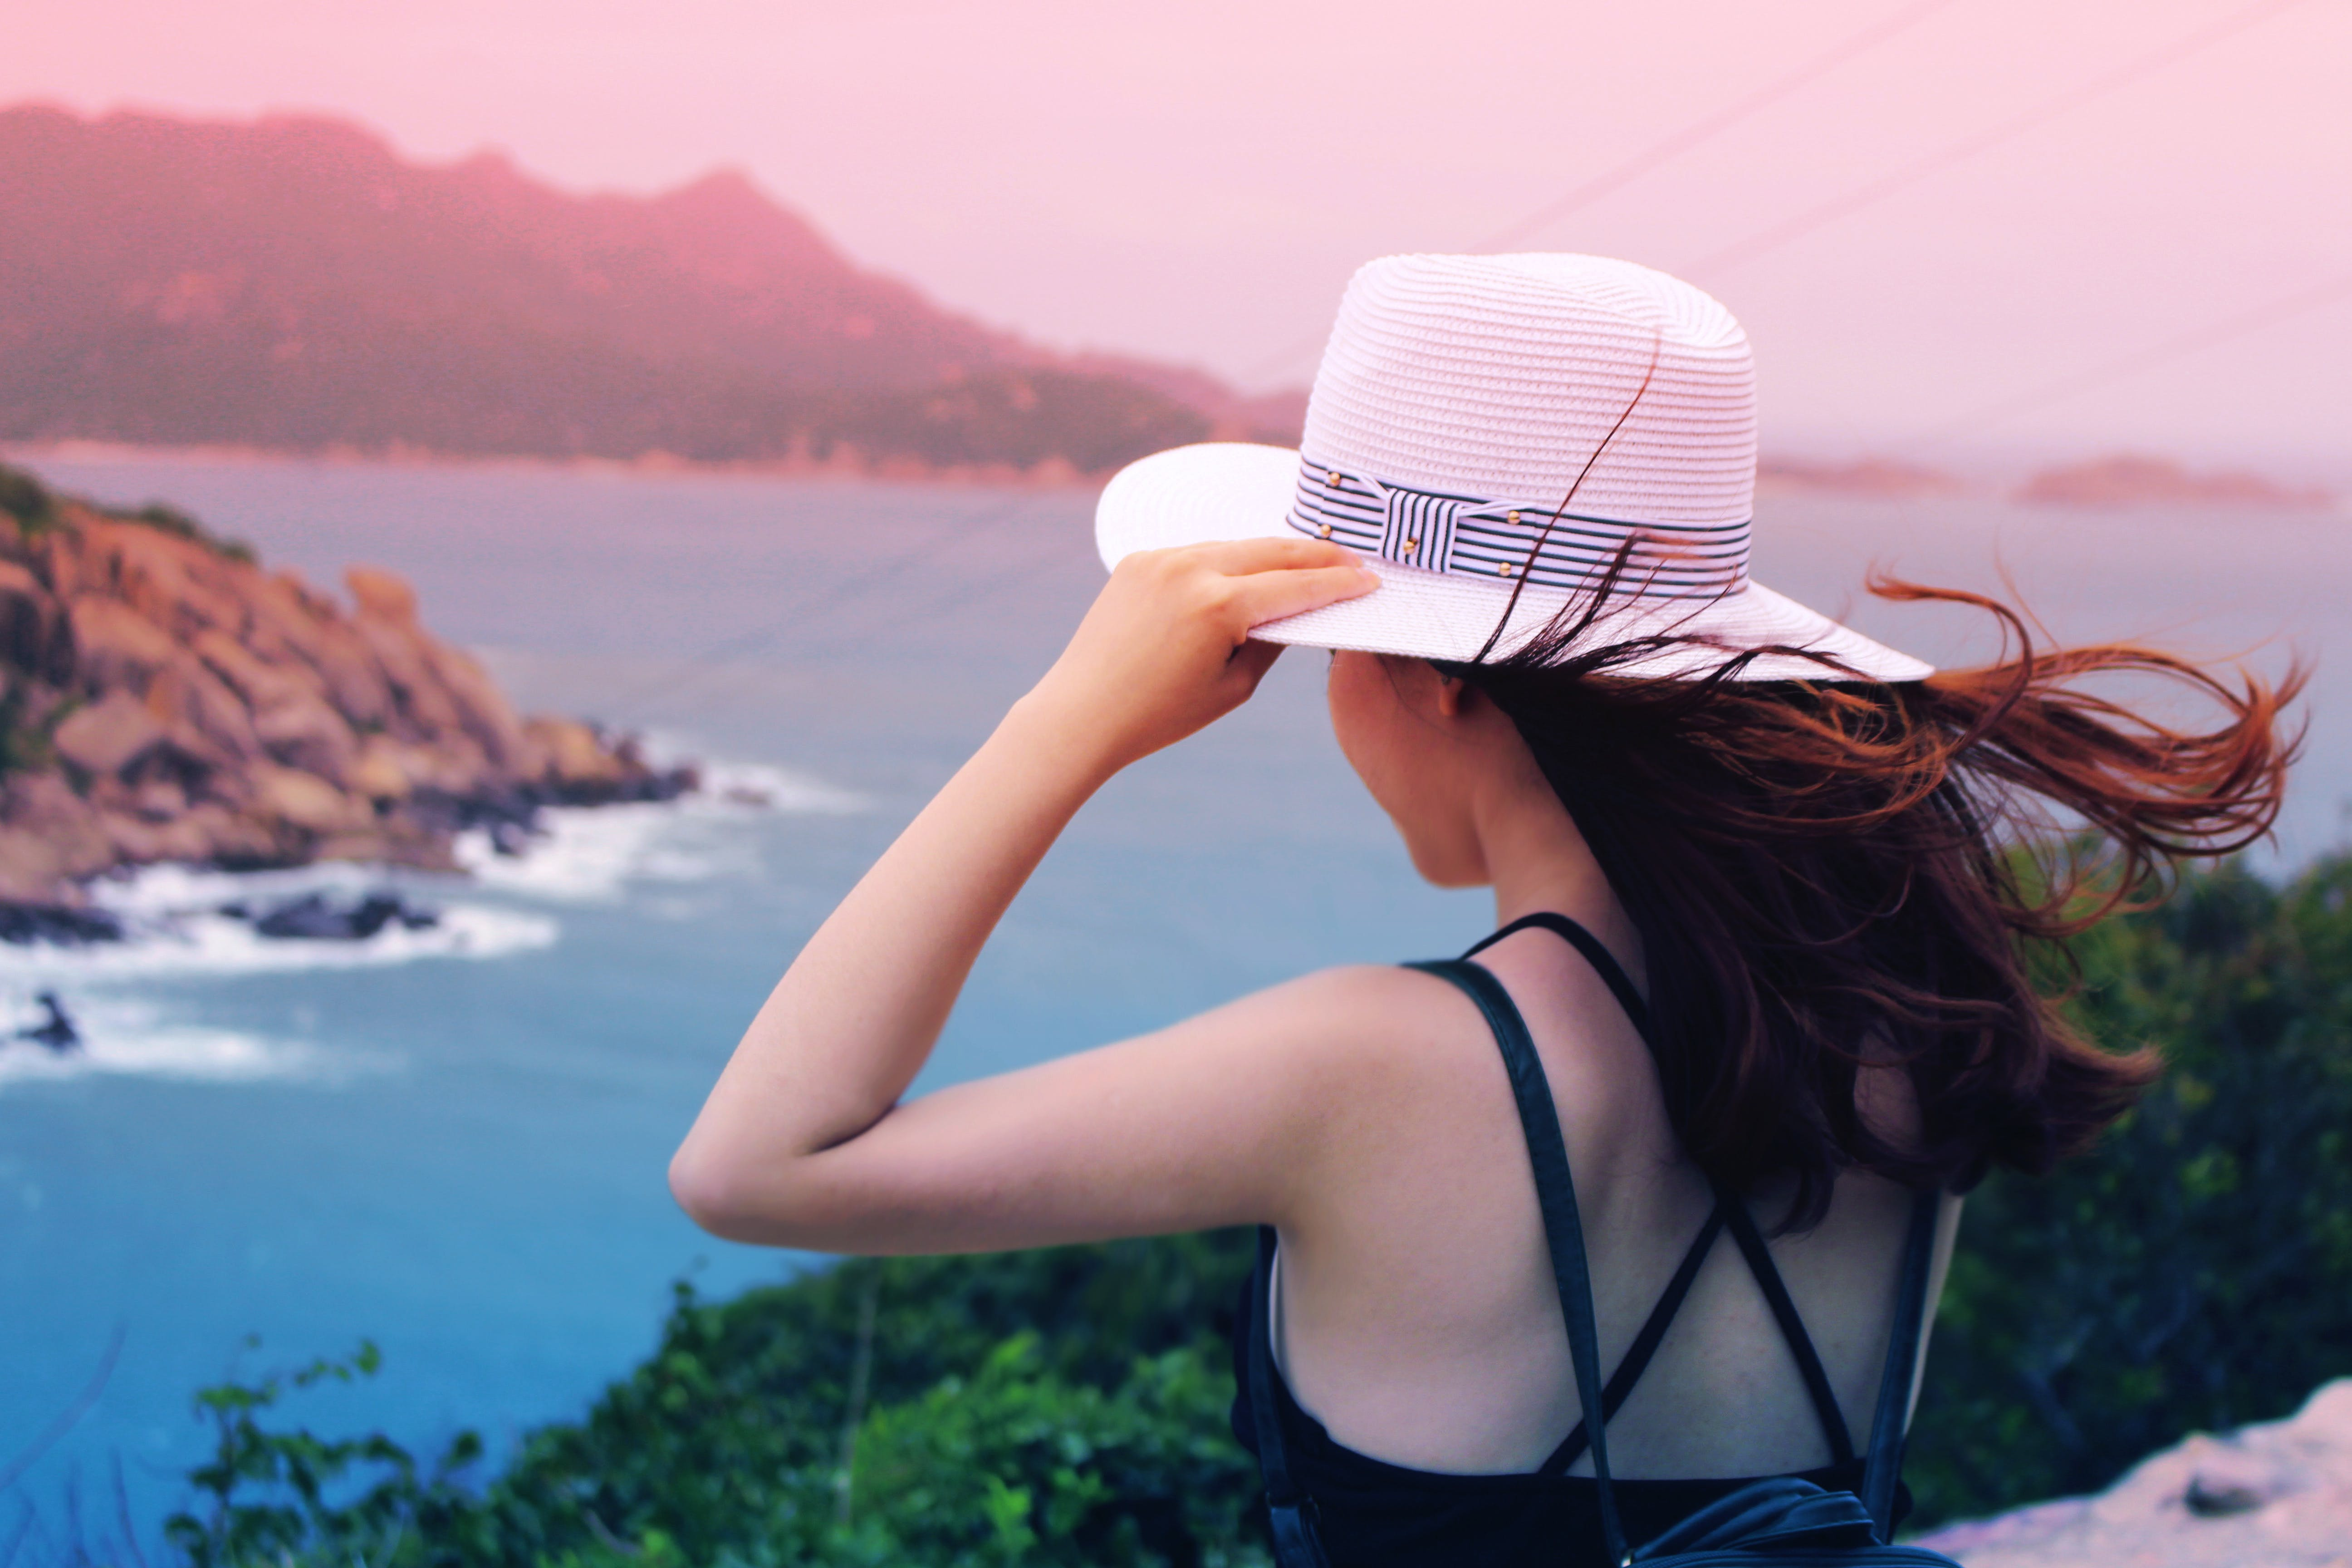 Wman Holding Wricker Shade Hat on Ocean View